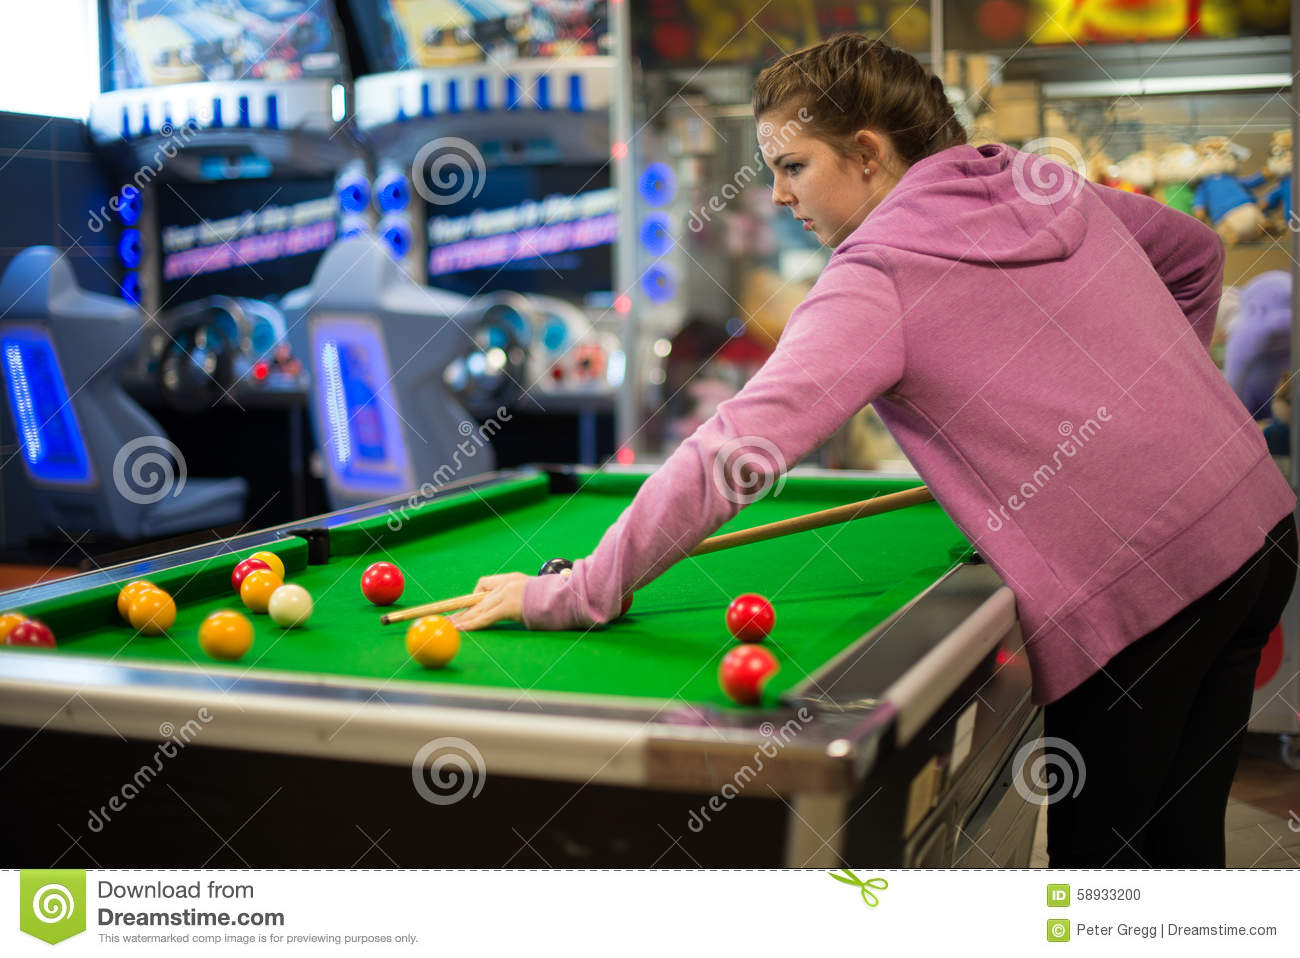 Teenage girl playing pool